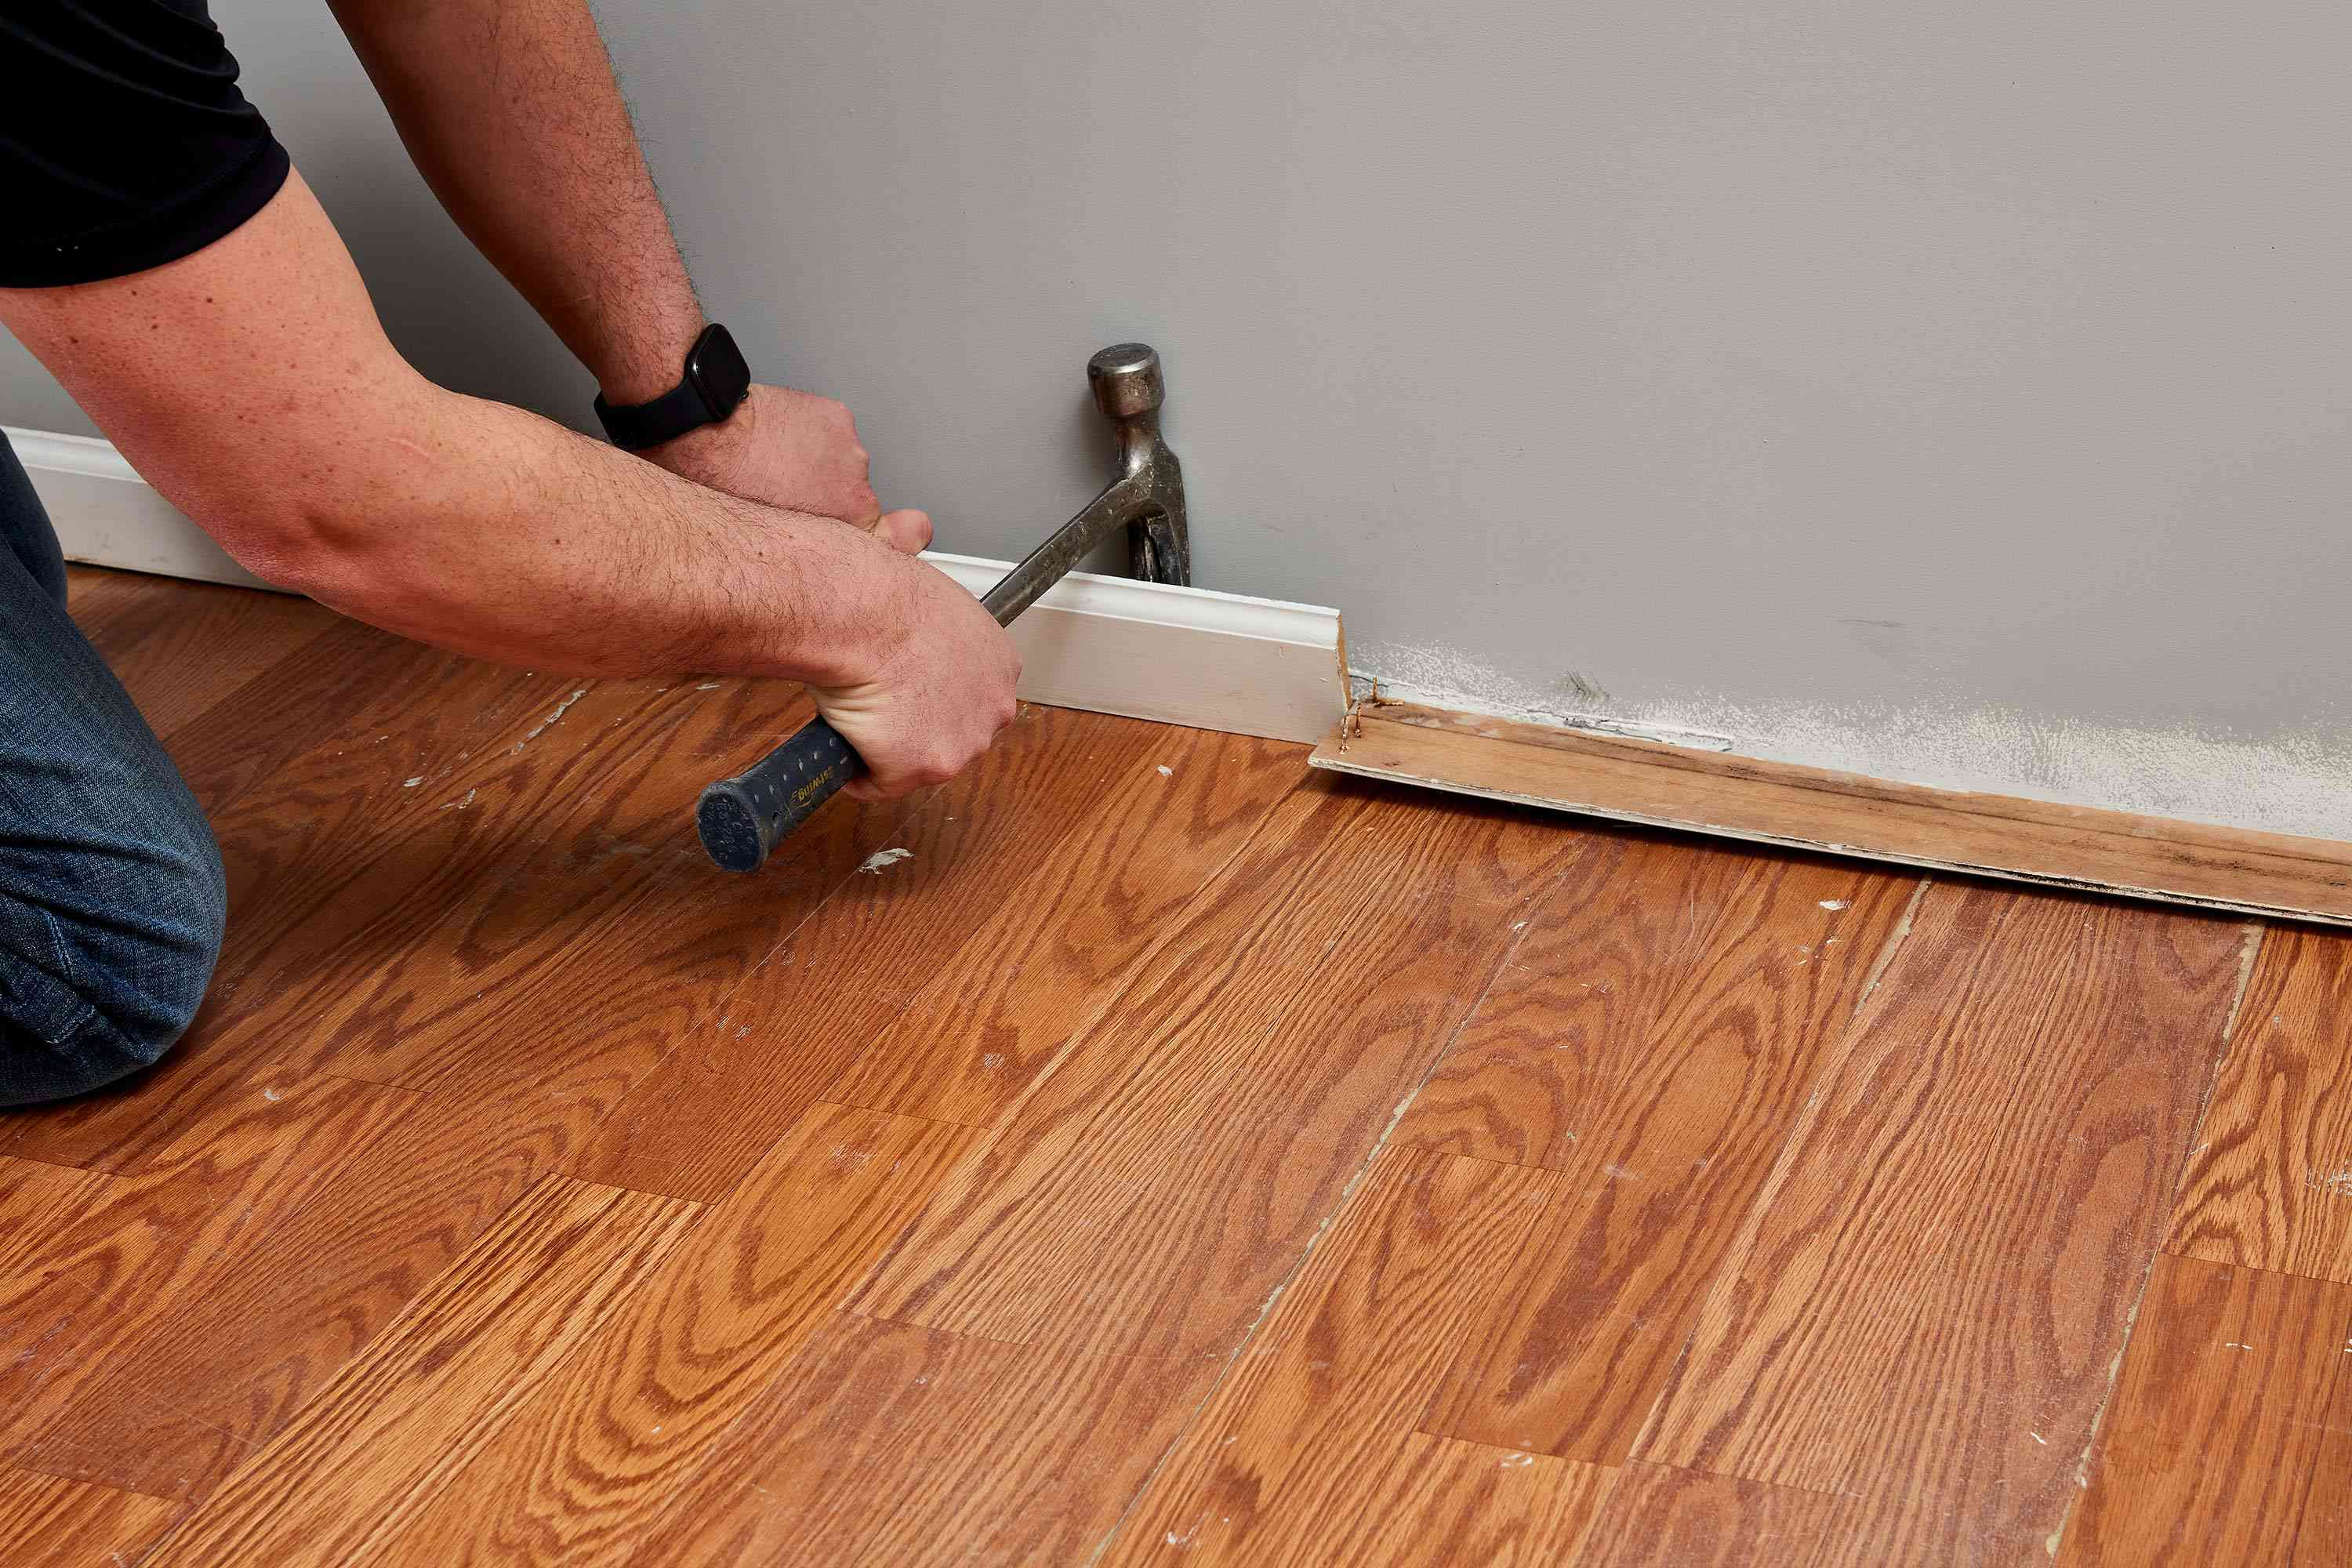 To Lay Laminate Flooring, Can Laminate Flooring Be Laid Over Concrete